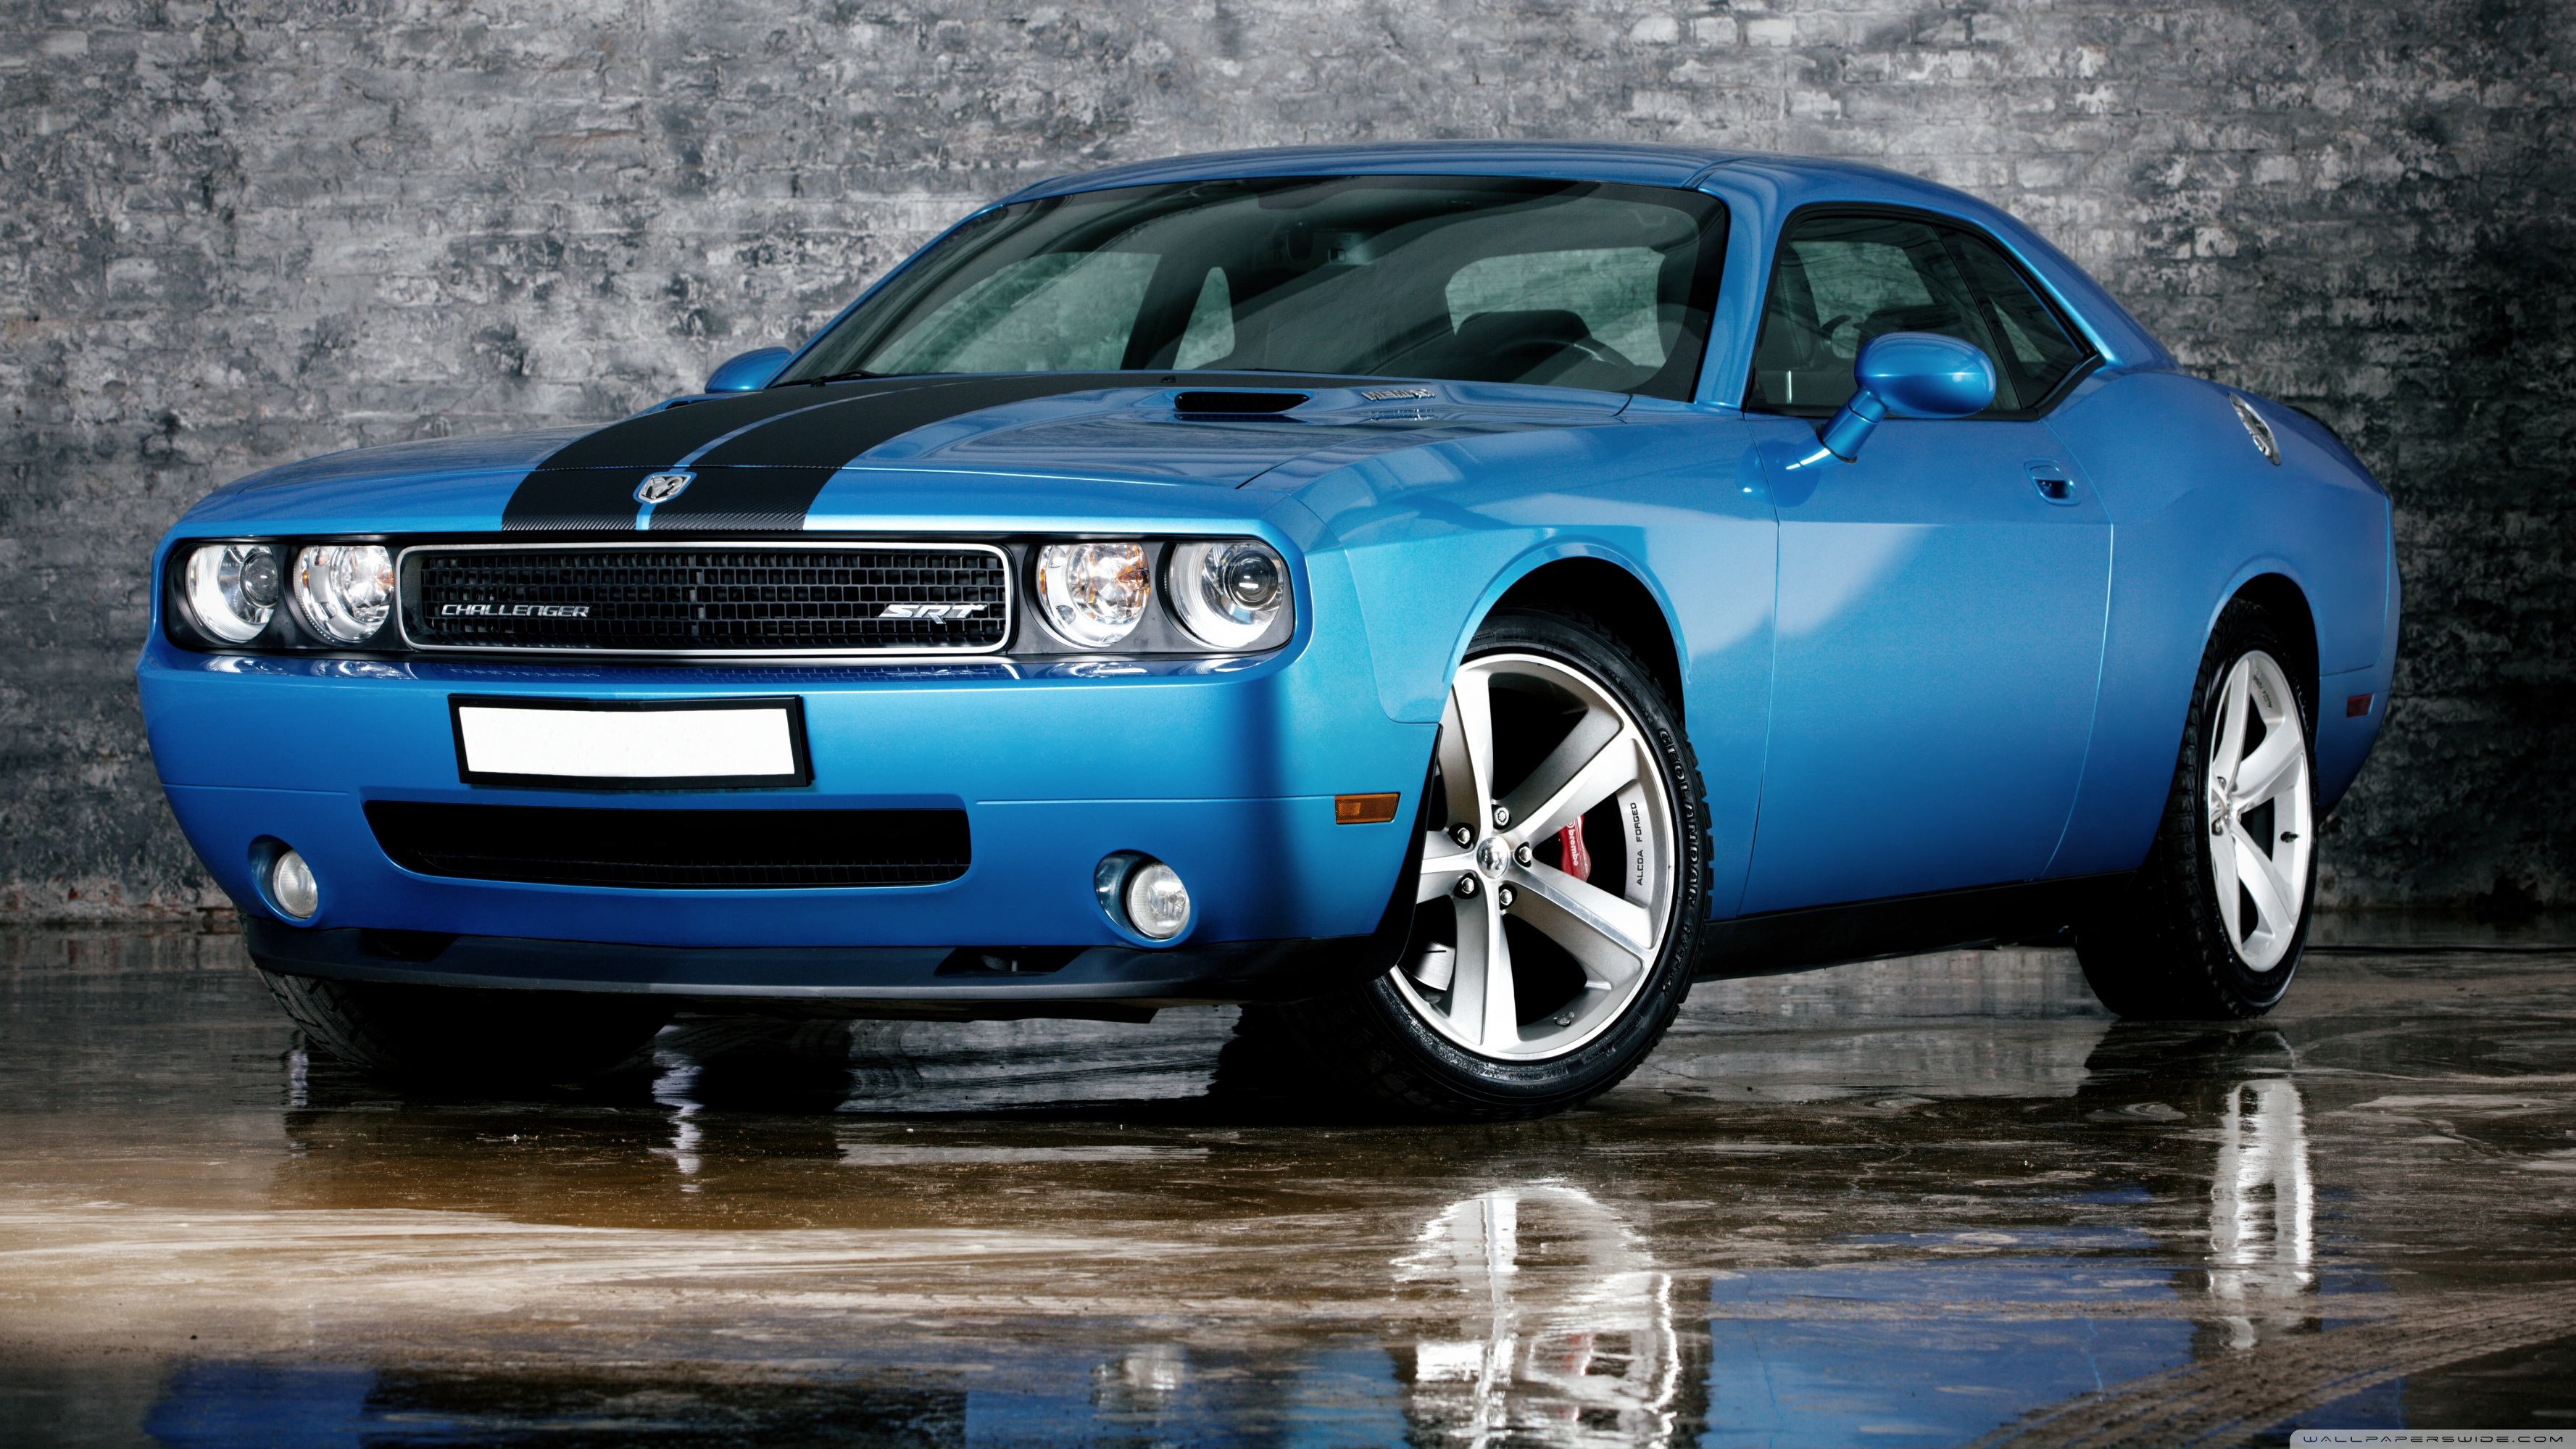 Challenger Hd Wallpaper Dodge Challenger 4k Hd Desktop Wallpaper For 4k Ultra Hd Tv